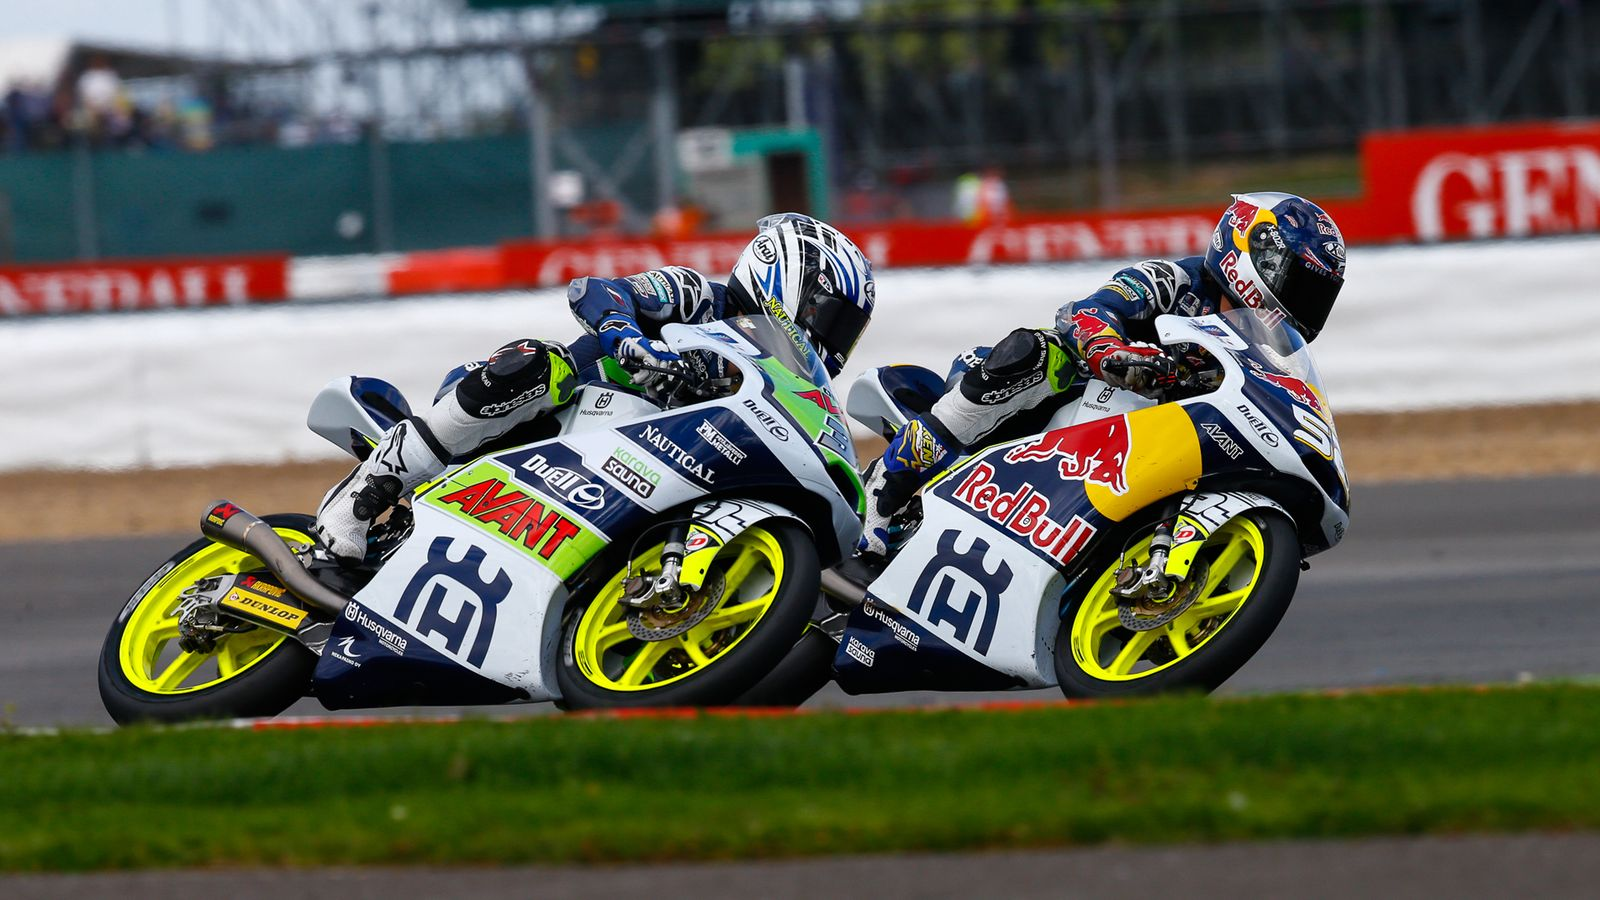 MotoGP Racing Wallpapers HD